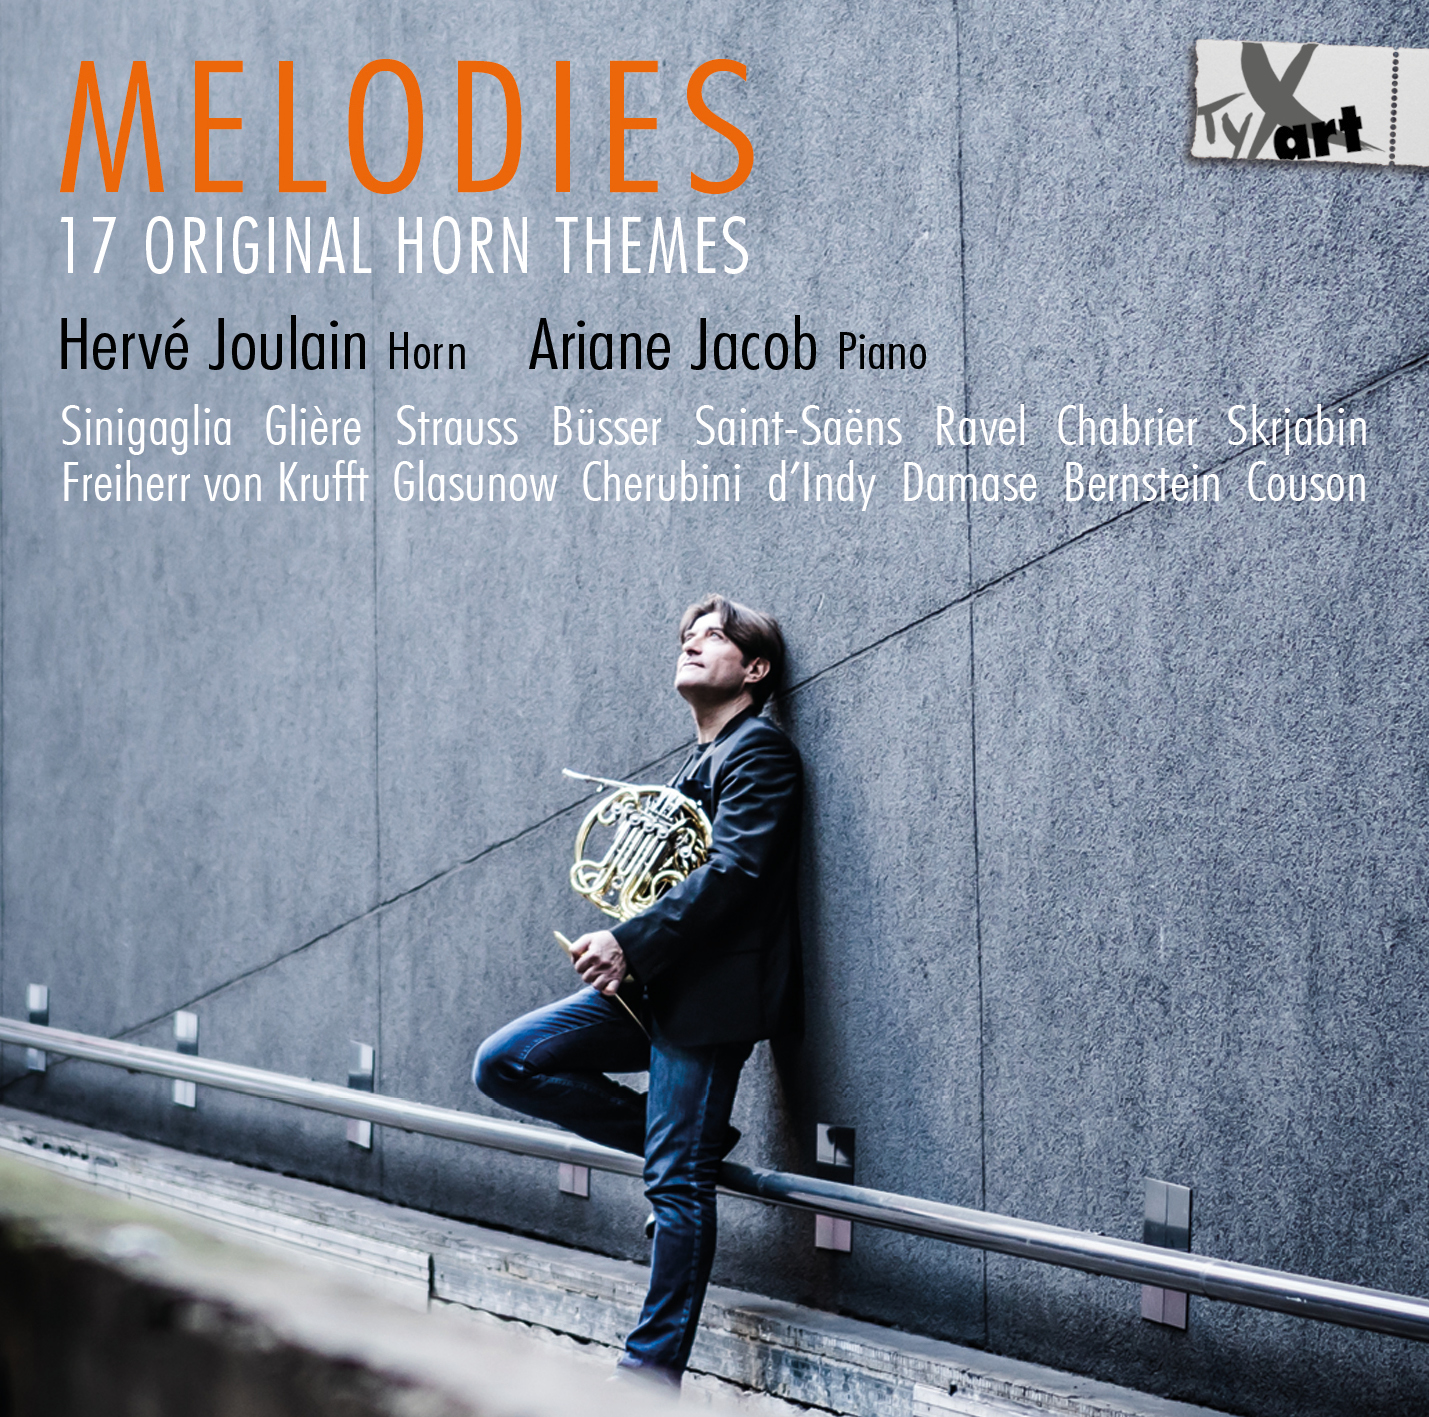 MELODIES - 17 Original Horn Themes - Joulain & Jacob